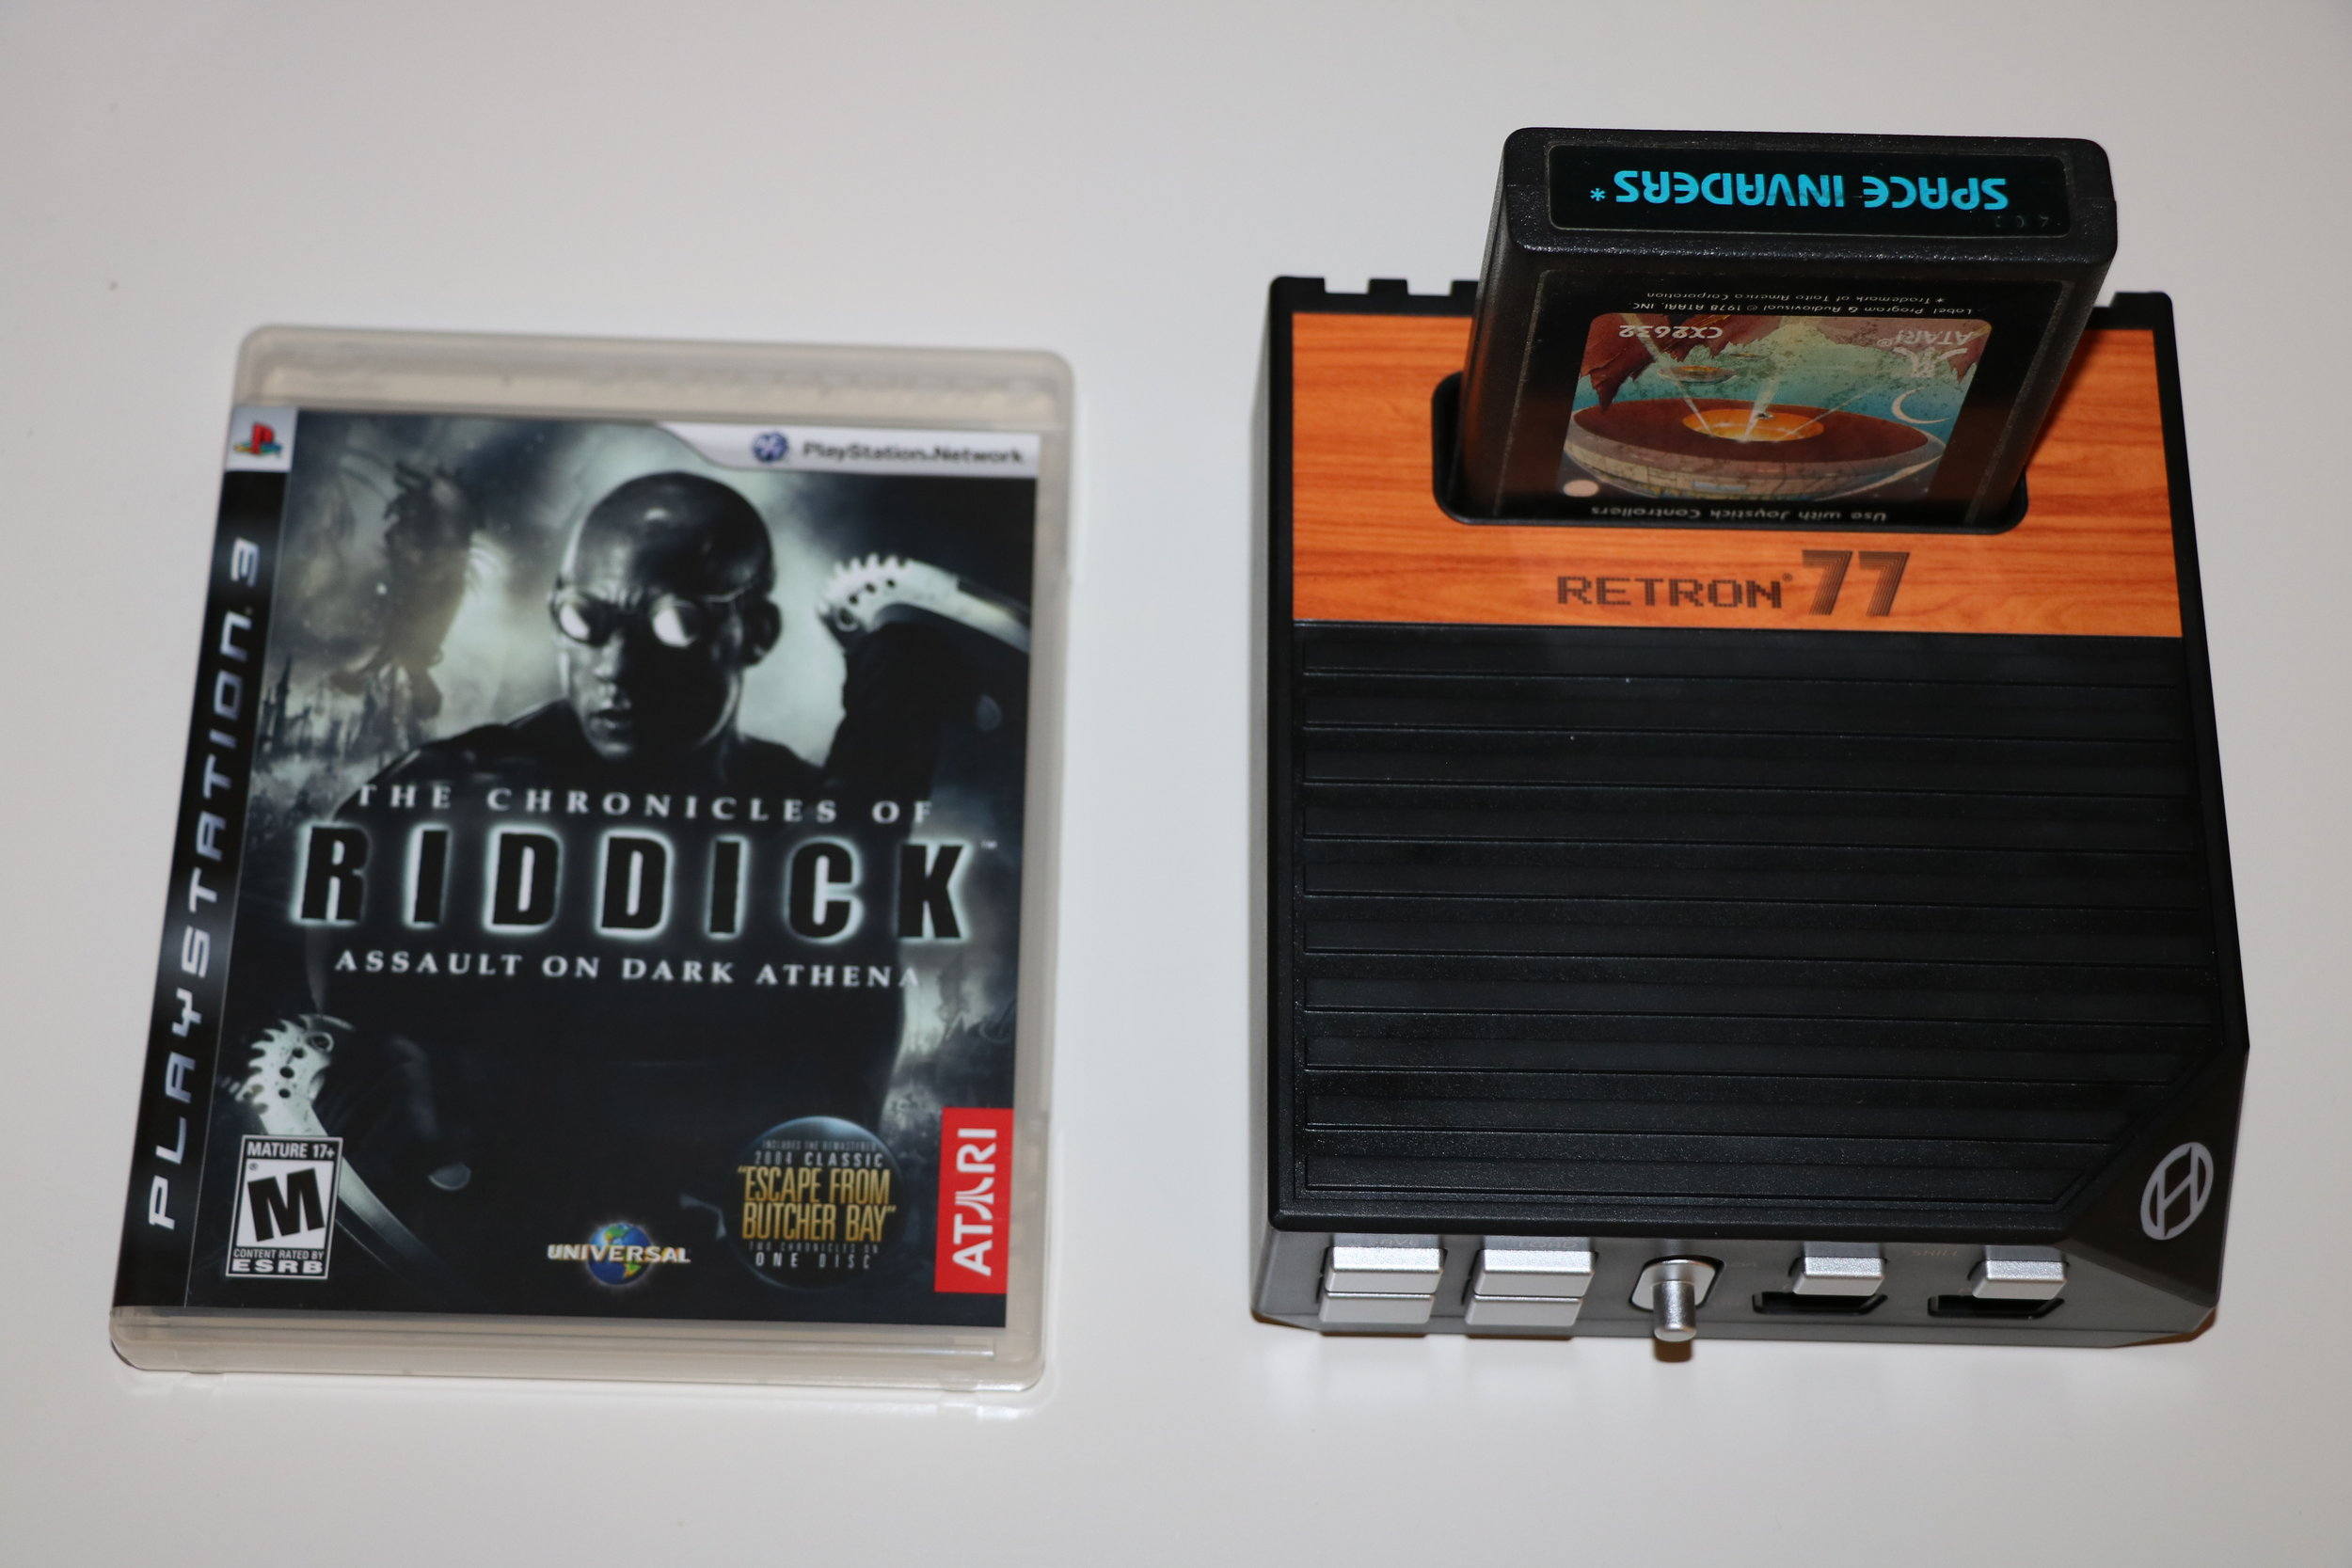 The Retron 77 compared in size to one of the most famous releases from Atari (right up there with Warren Robinet's, Adventure).